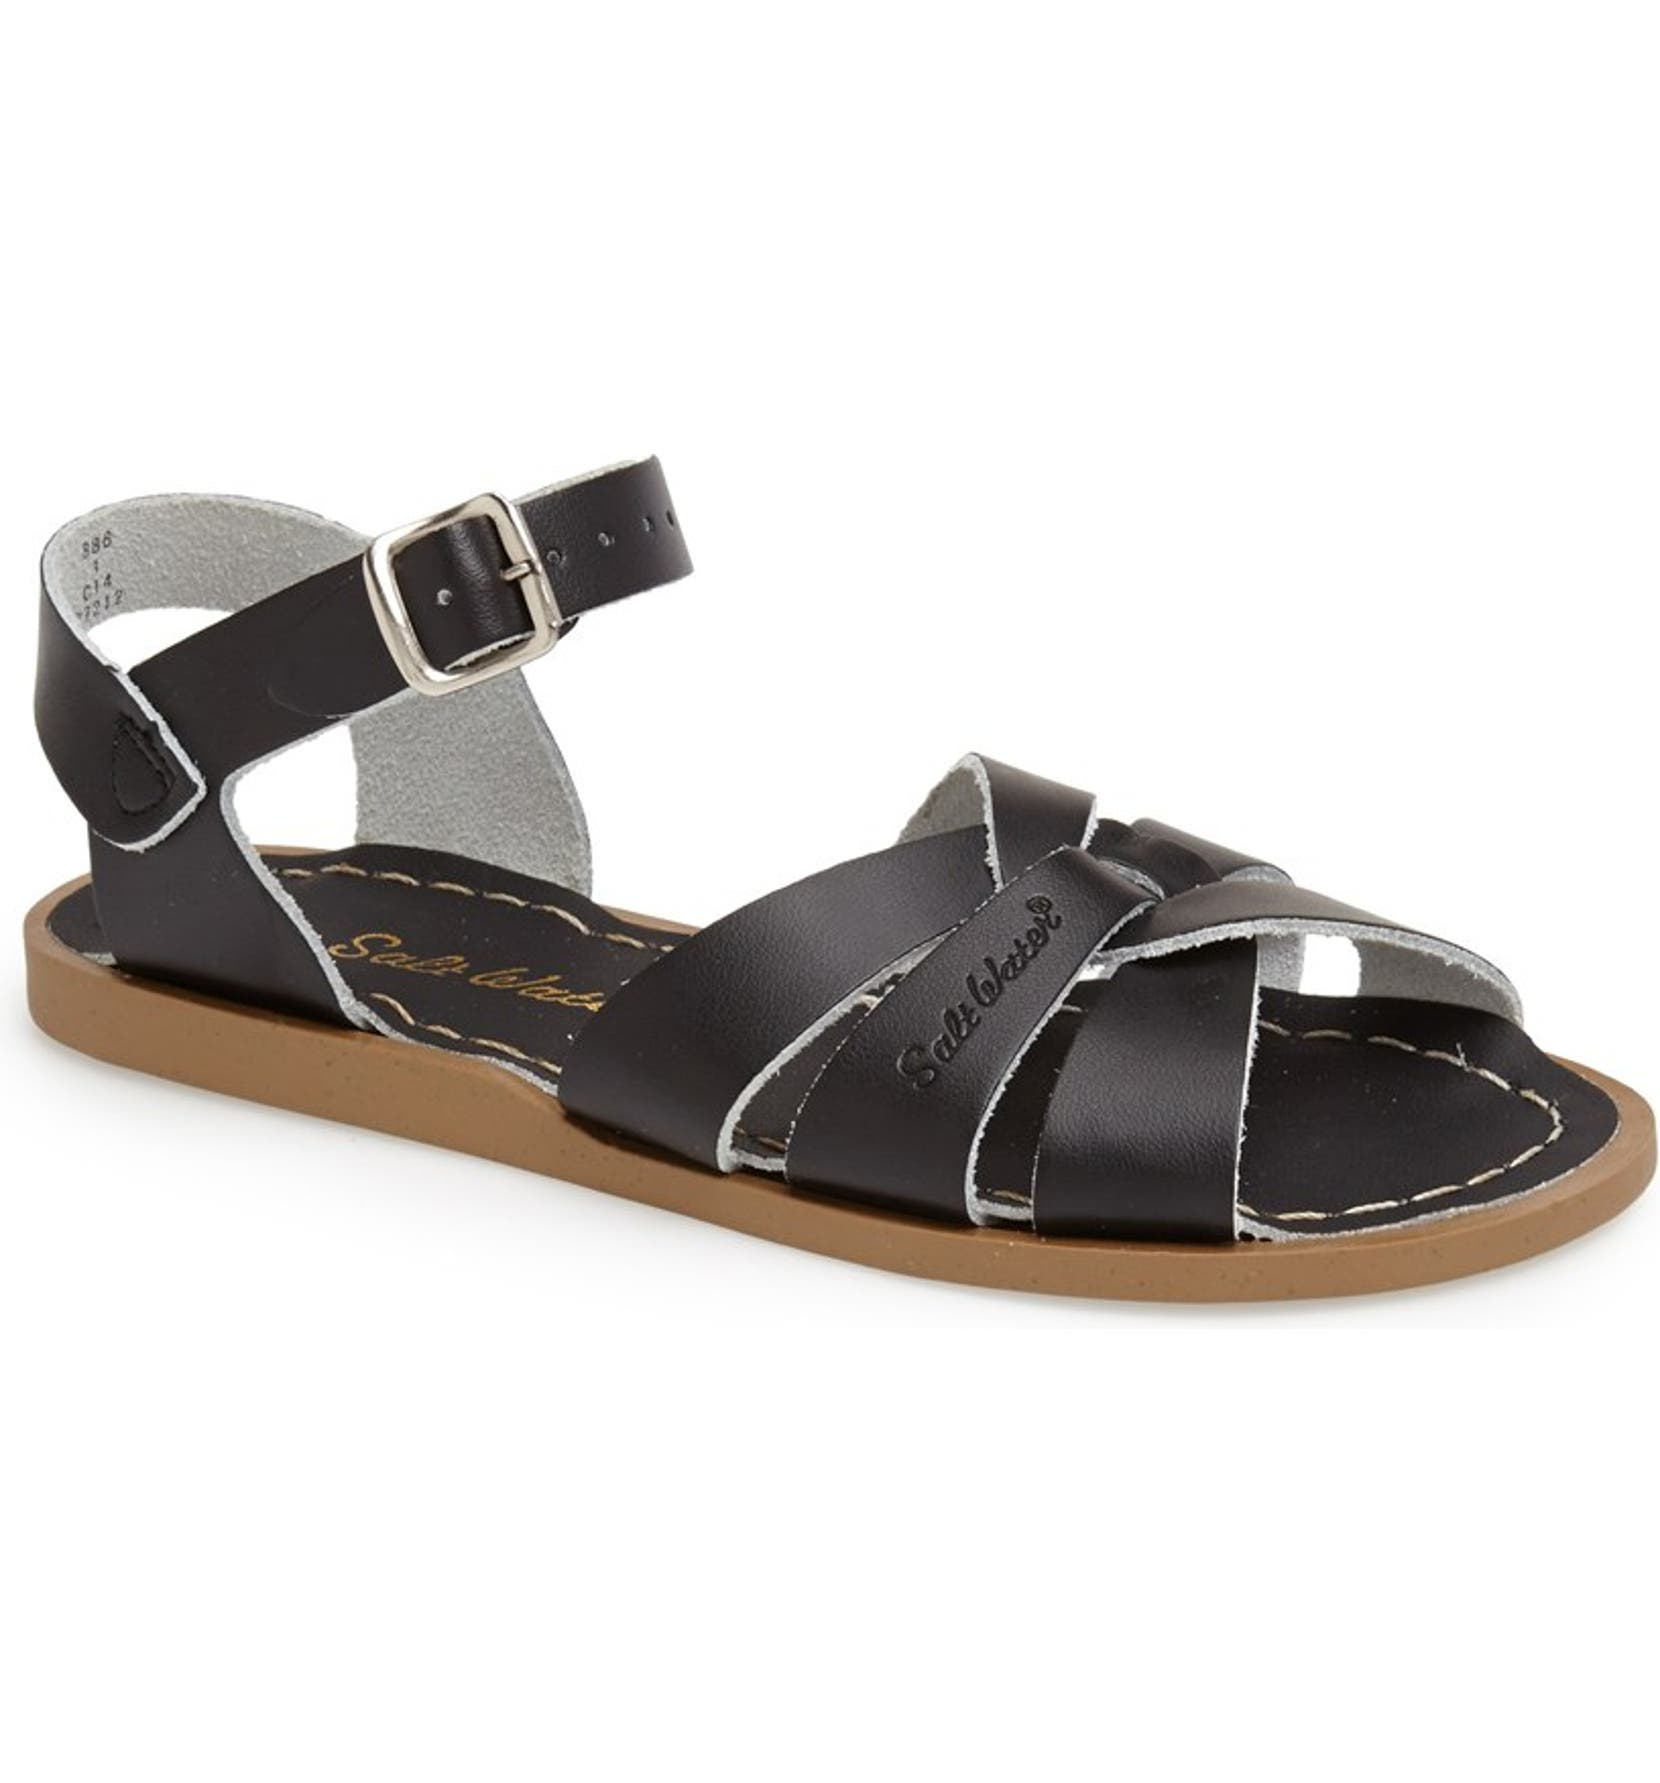 a72c54eed9a71 Water Friendly Sandal